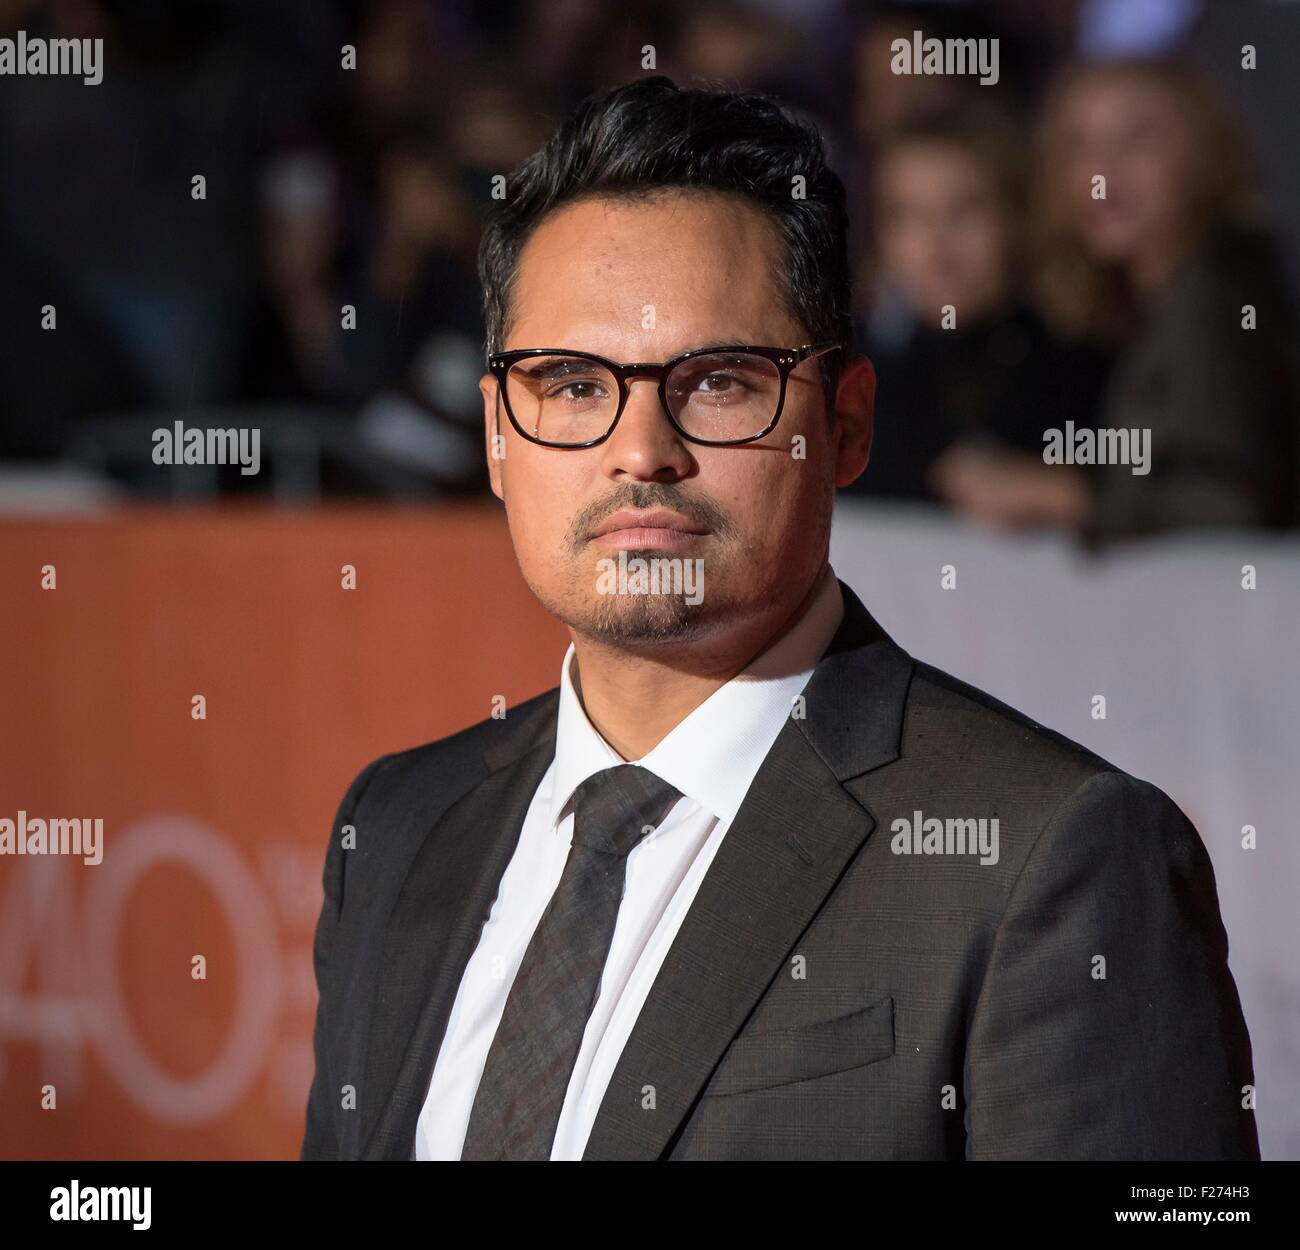 Actor Michael Pena attends the world premiere for The Martian at the Toronto International Film Festival at the - Stock Image